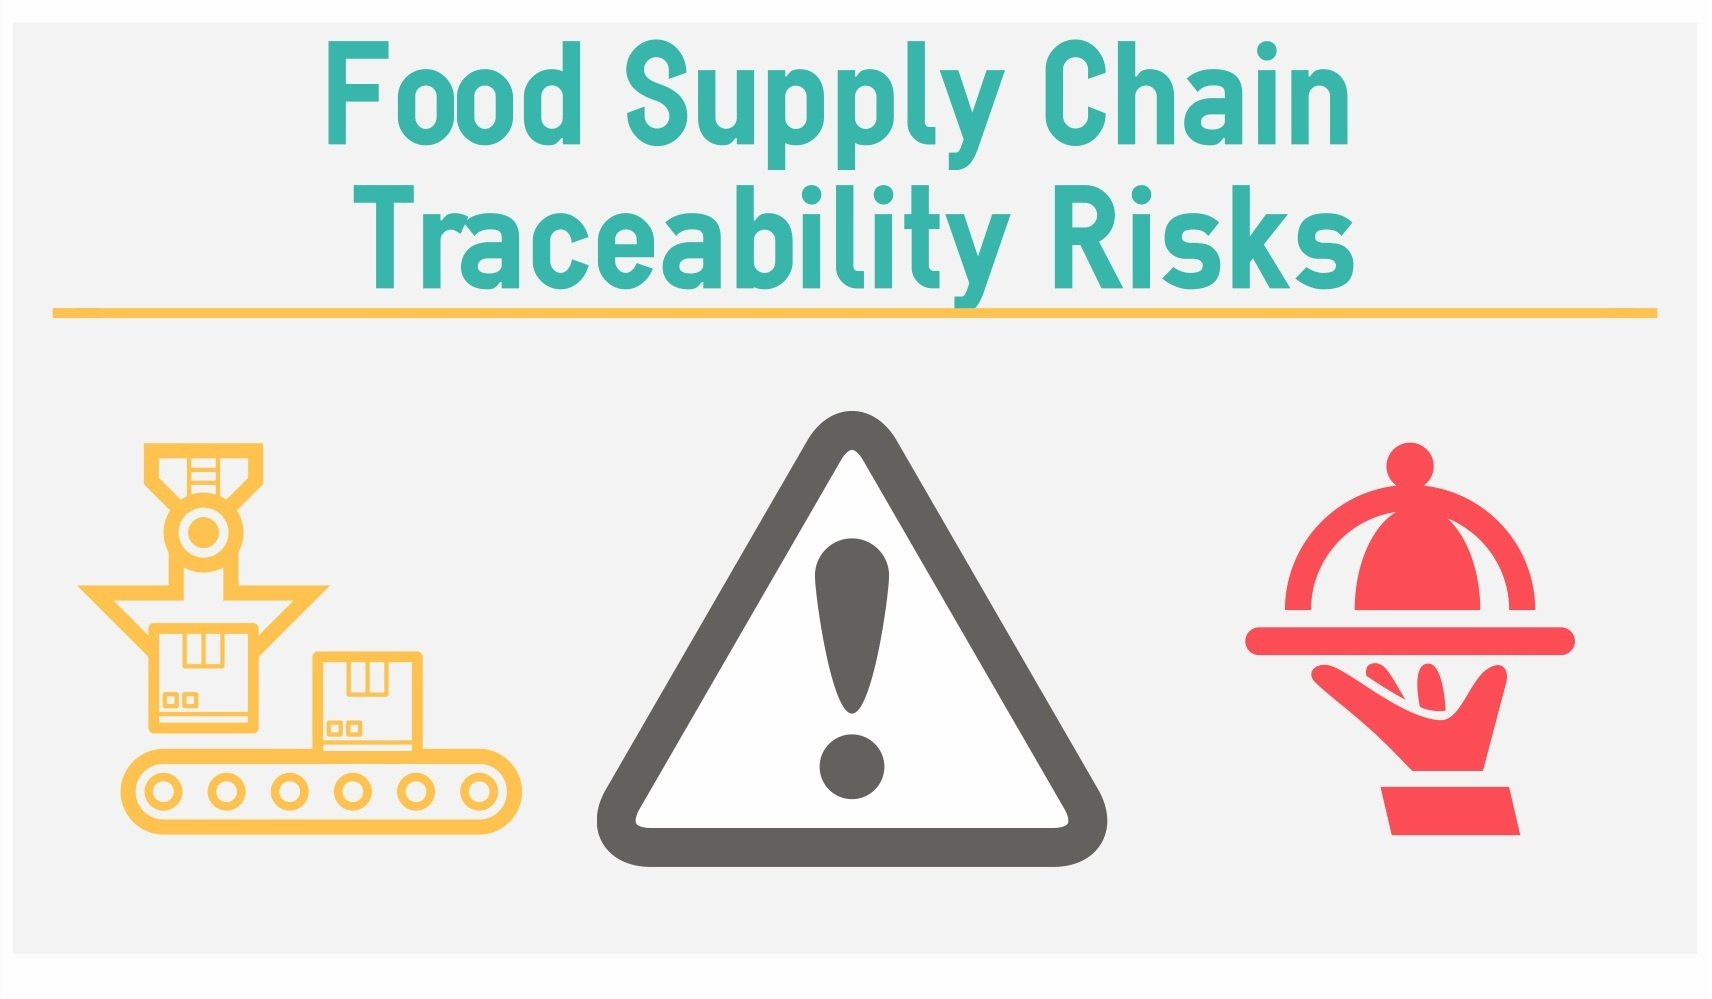 Food Supply Chain Traceability Risks and Solutions